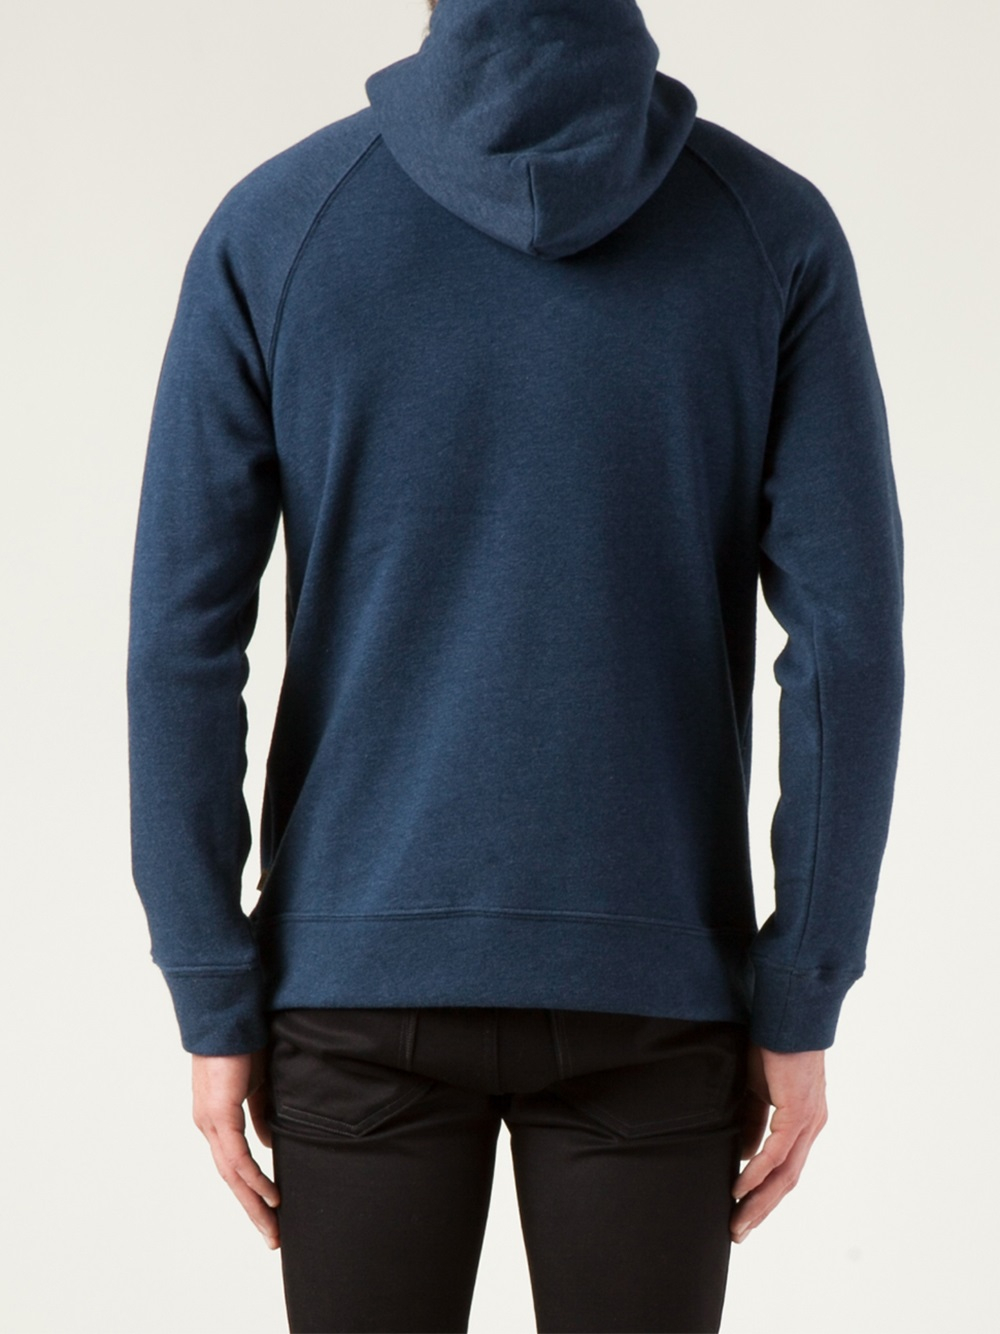 Lyst - Obey Drawstring Hoodie Sweater in Blue for Men